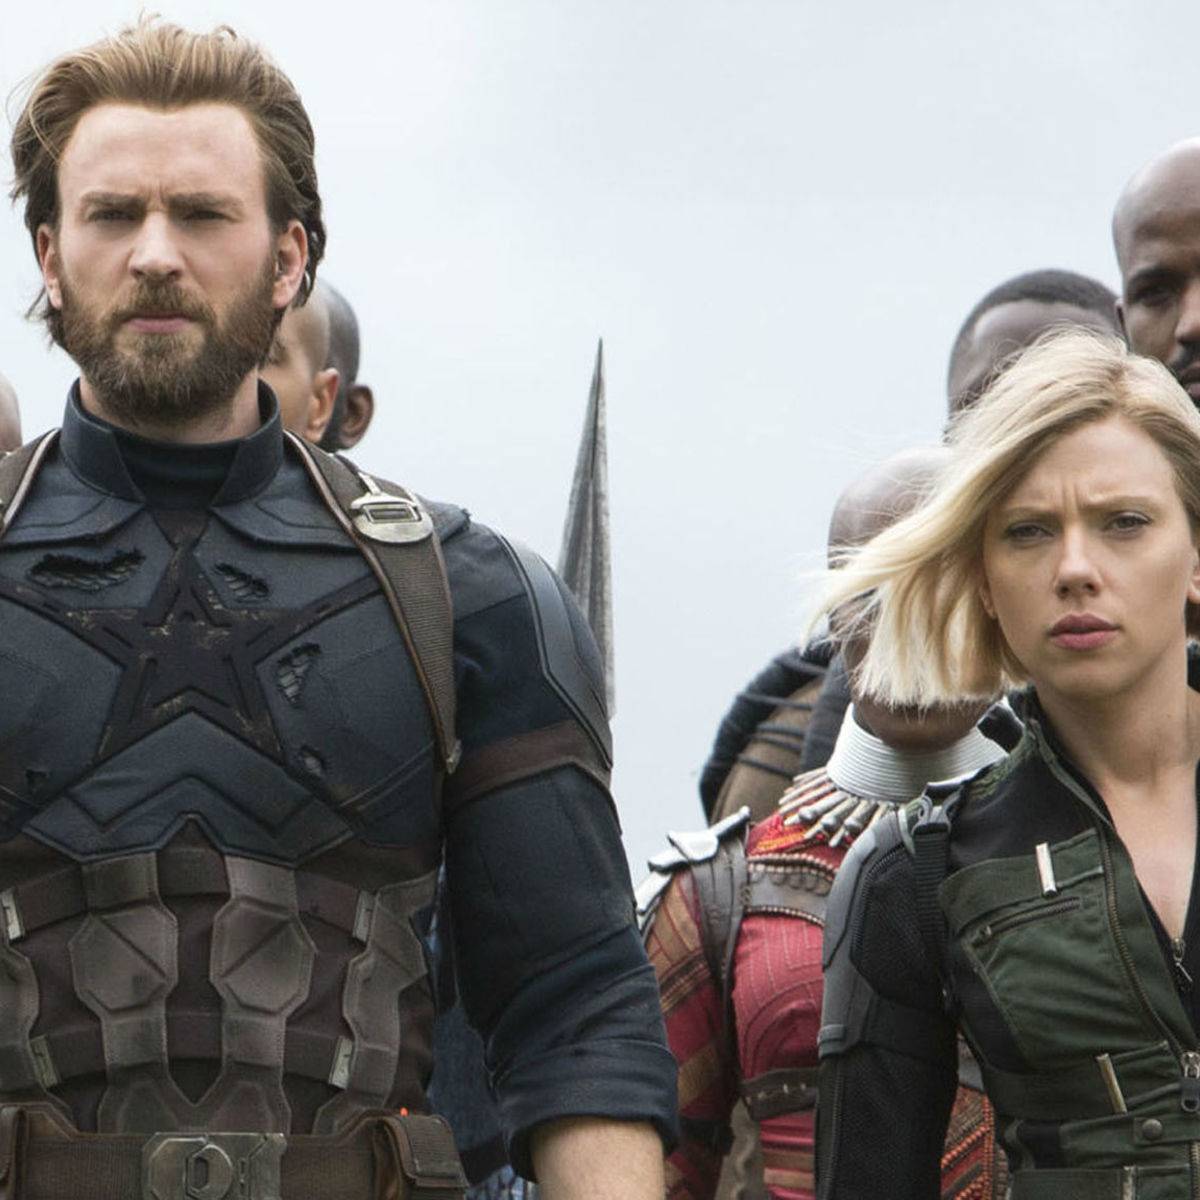 Captain America and Black Widow in Avengers: Infinity War